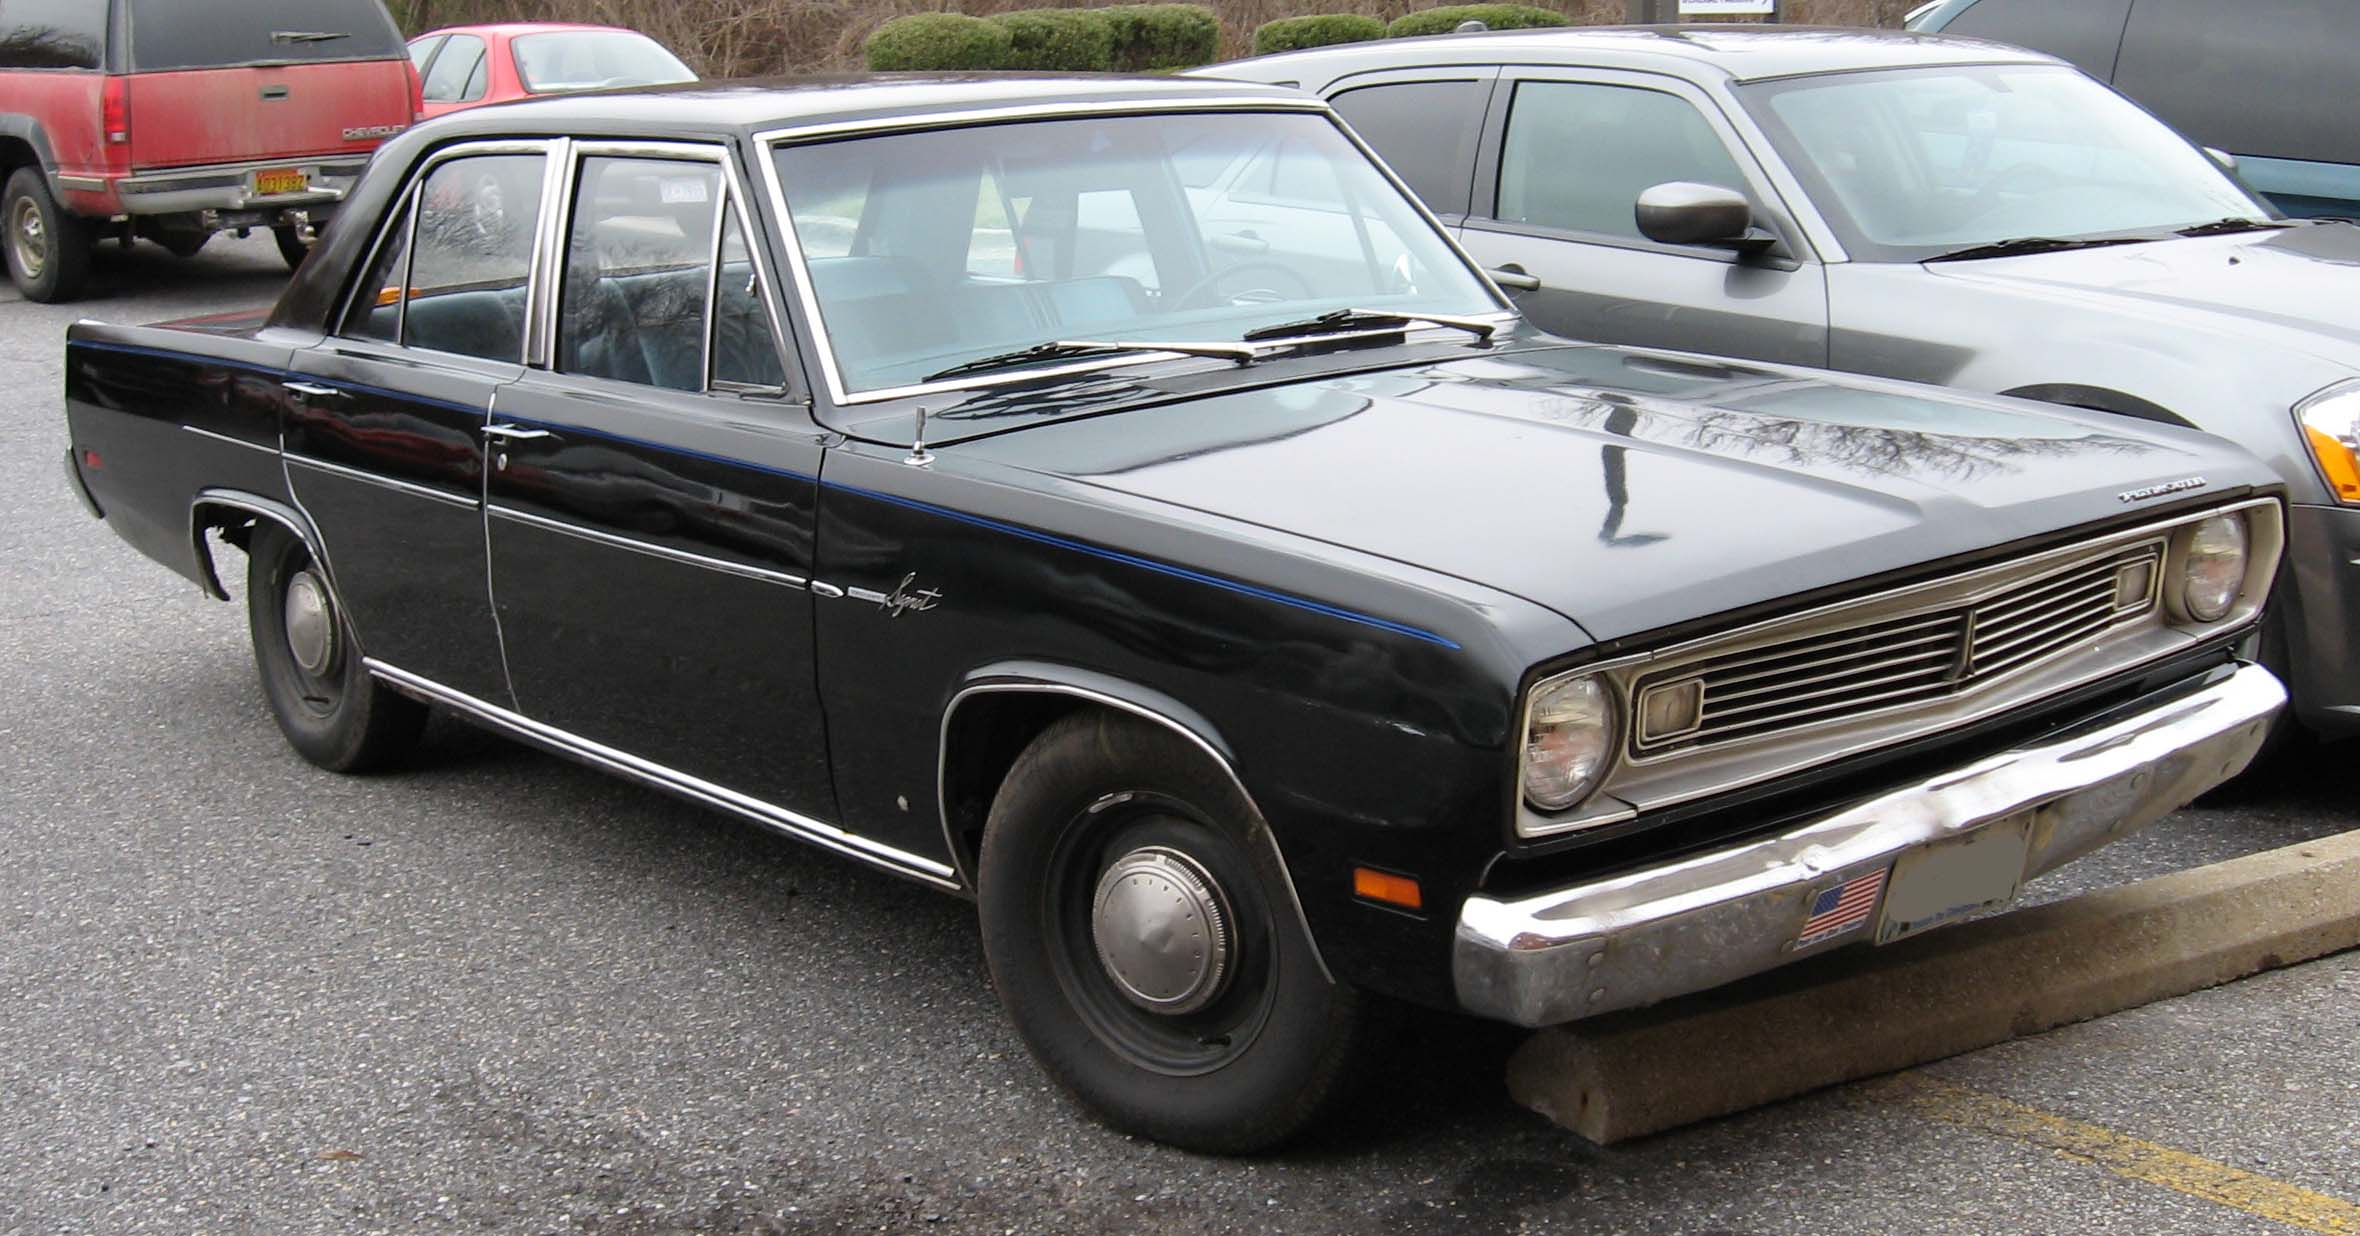 ... Plymouth Valiant 1973 #11 ...